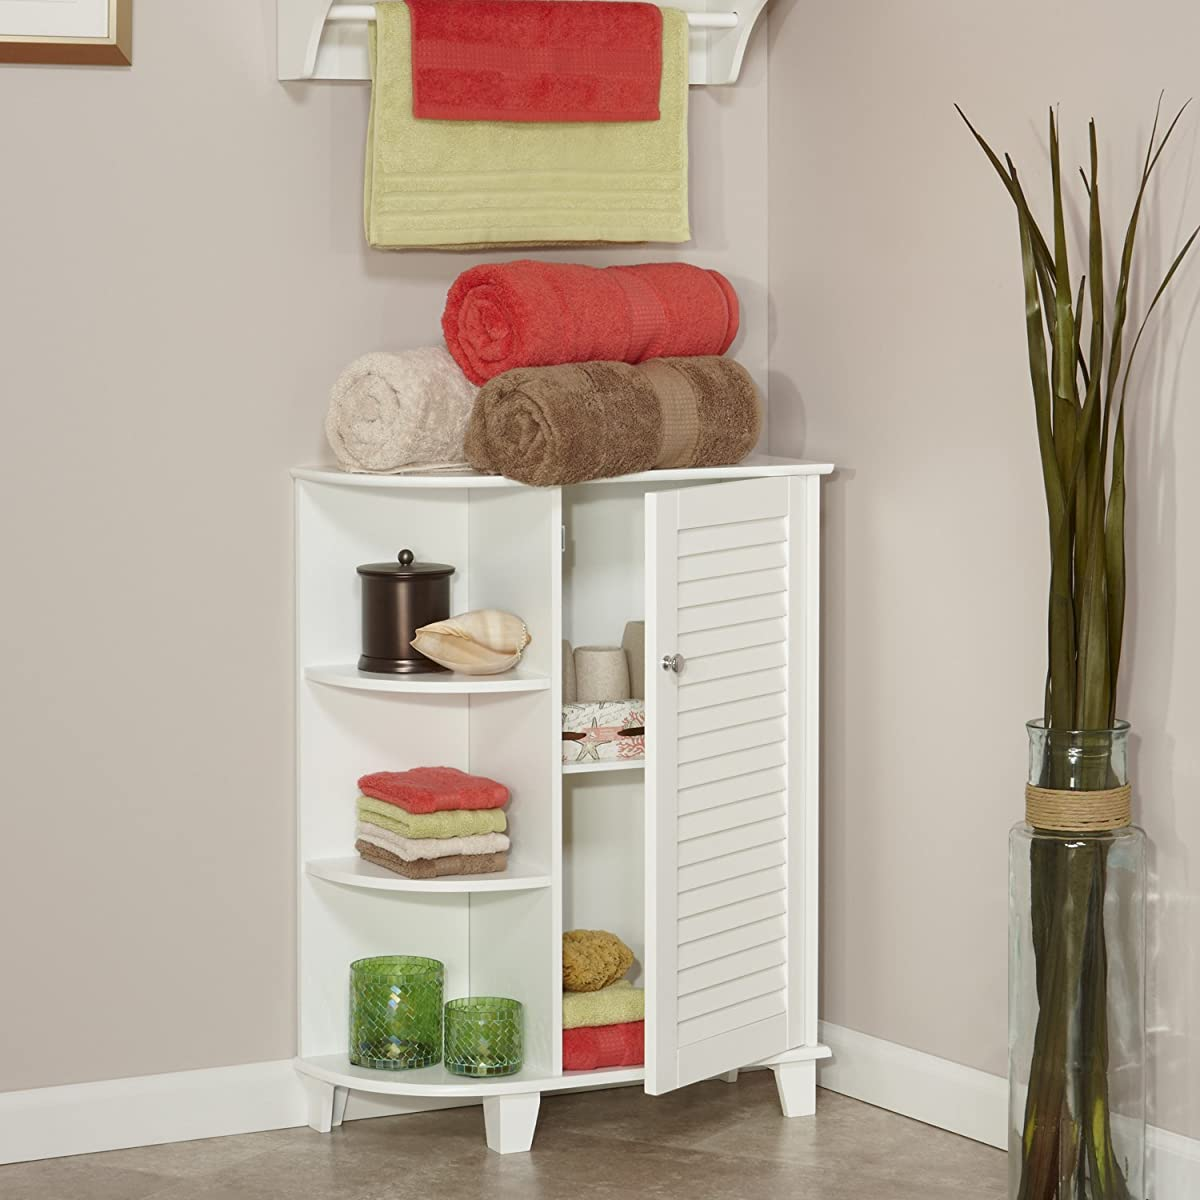 RiverRidge Home Ellsworth Floor Cabinet with Side Shelves, White